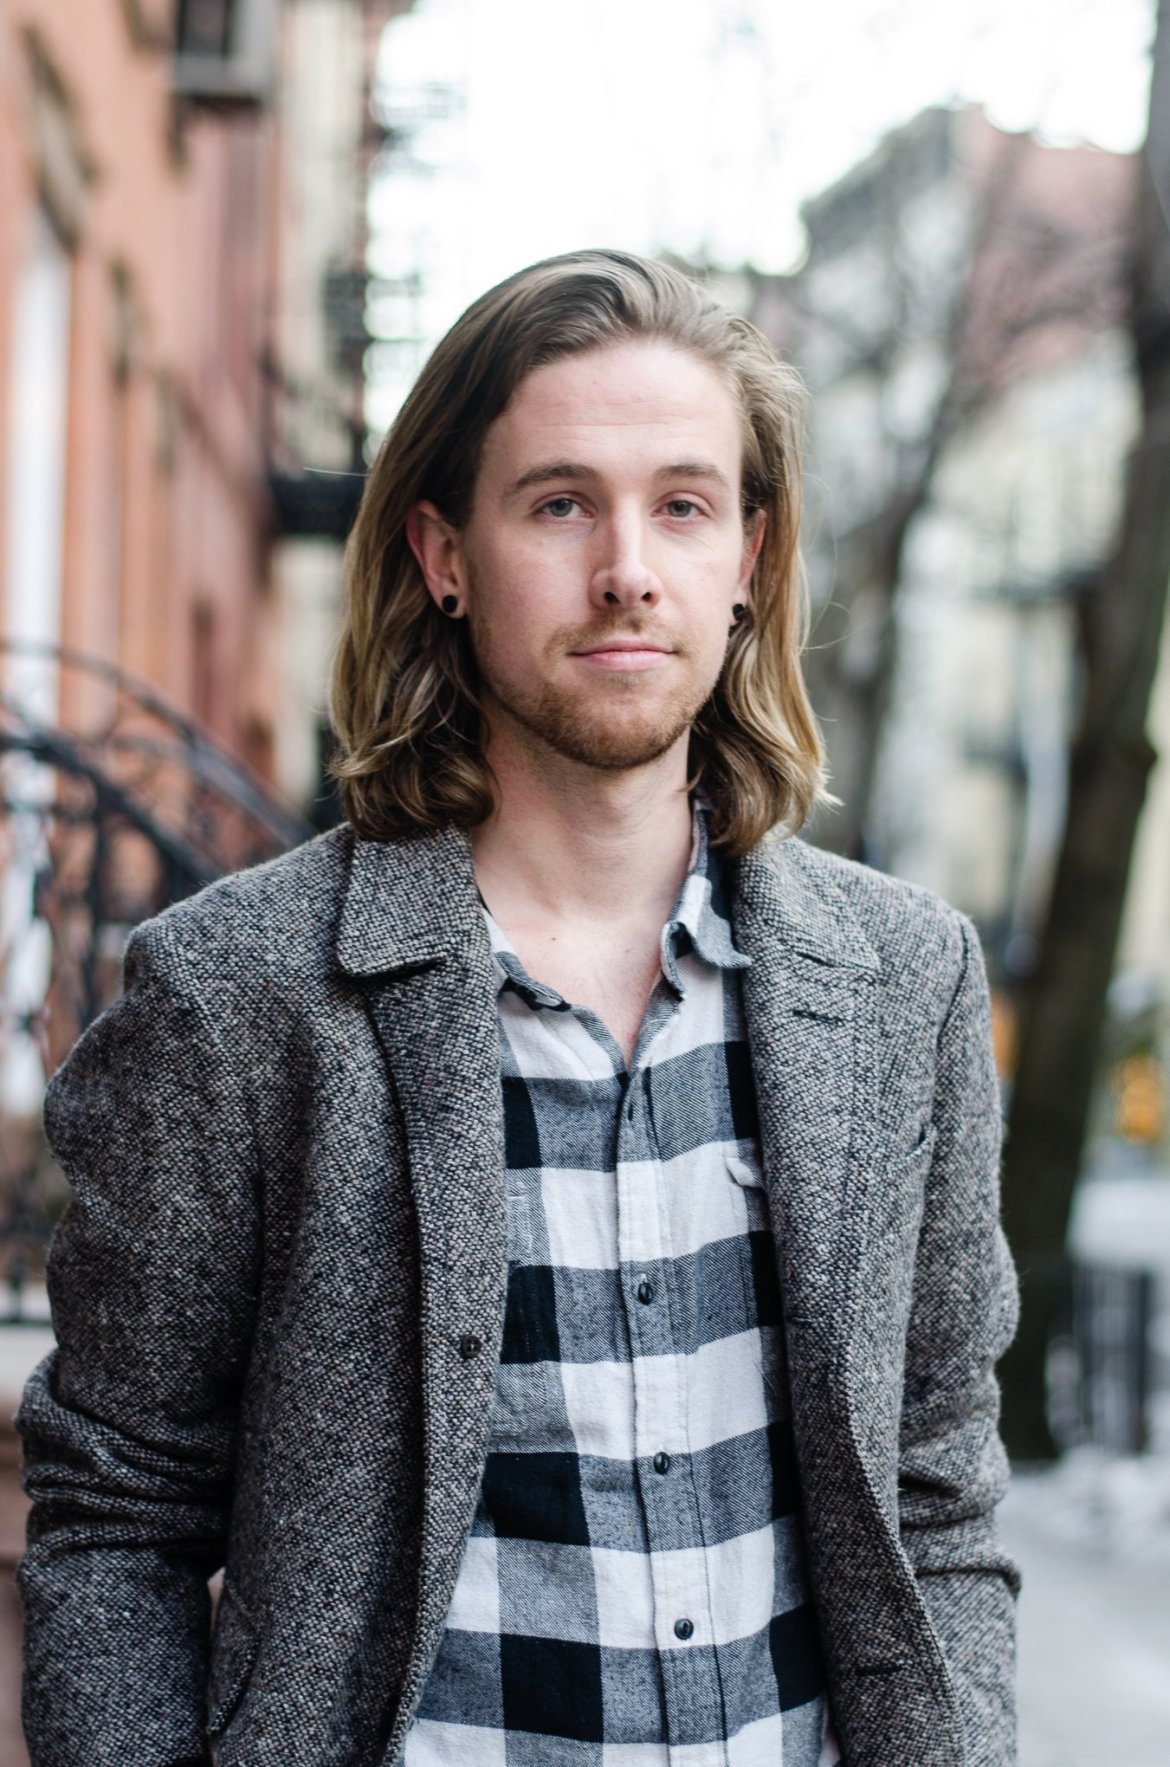 The Kentucky Gent, a men's fashion and lifestyle blogger, shares his NYMD journeys during NYFW.